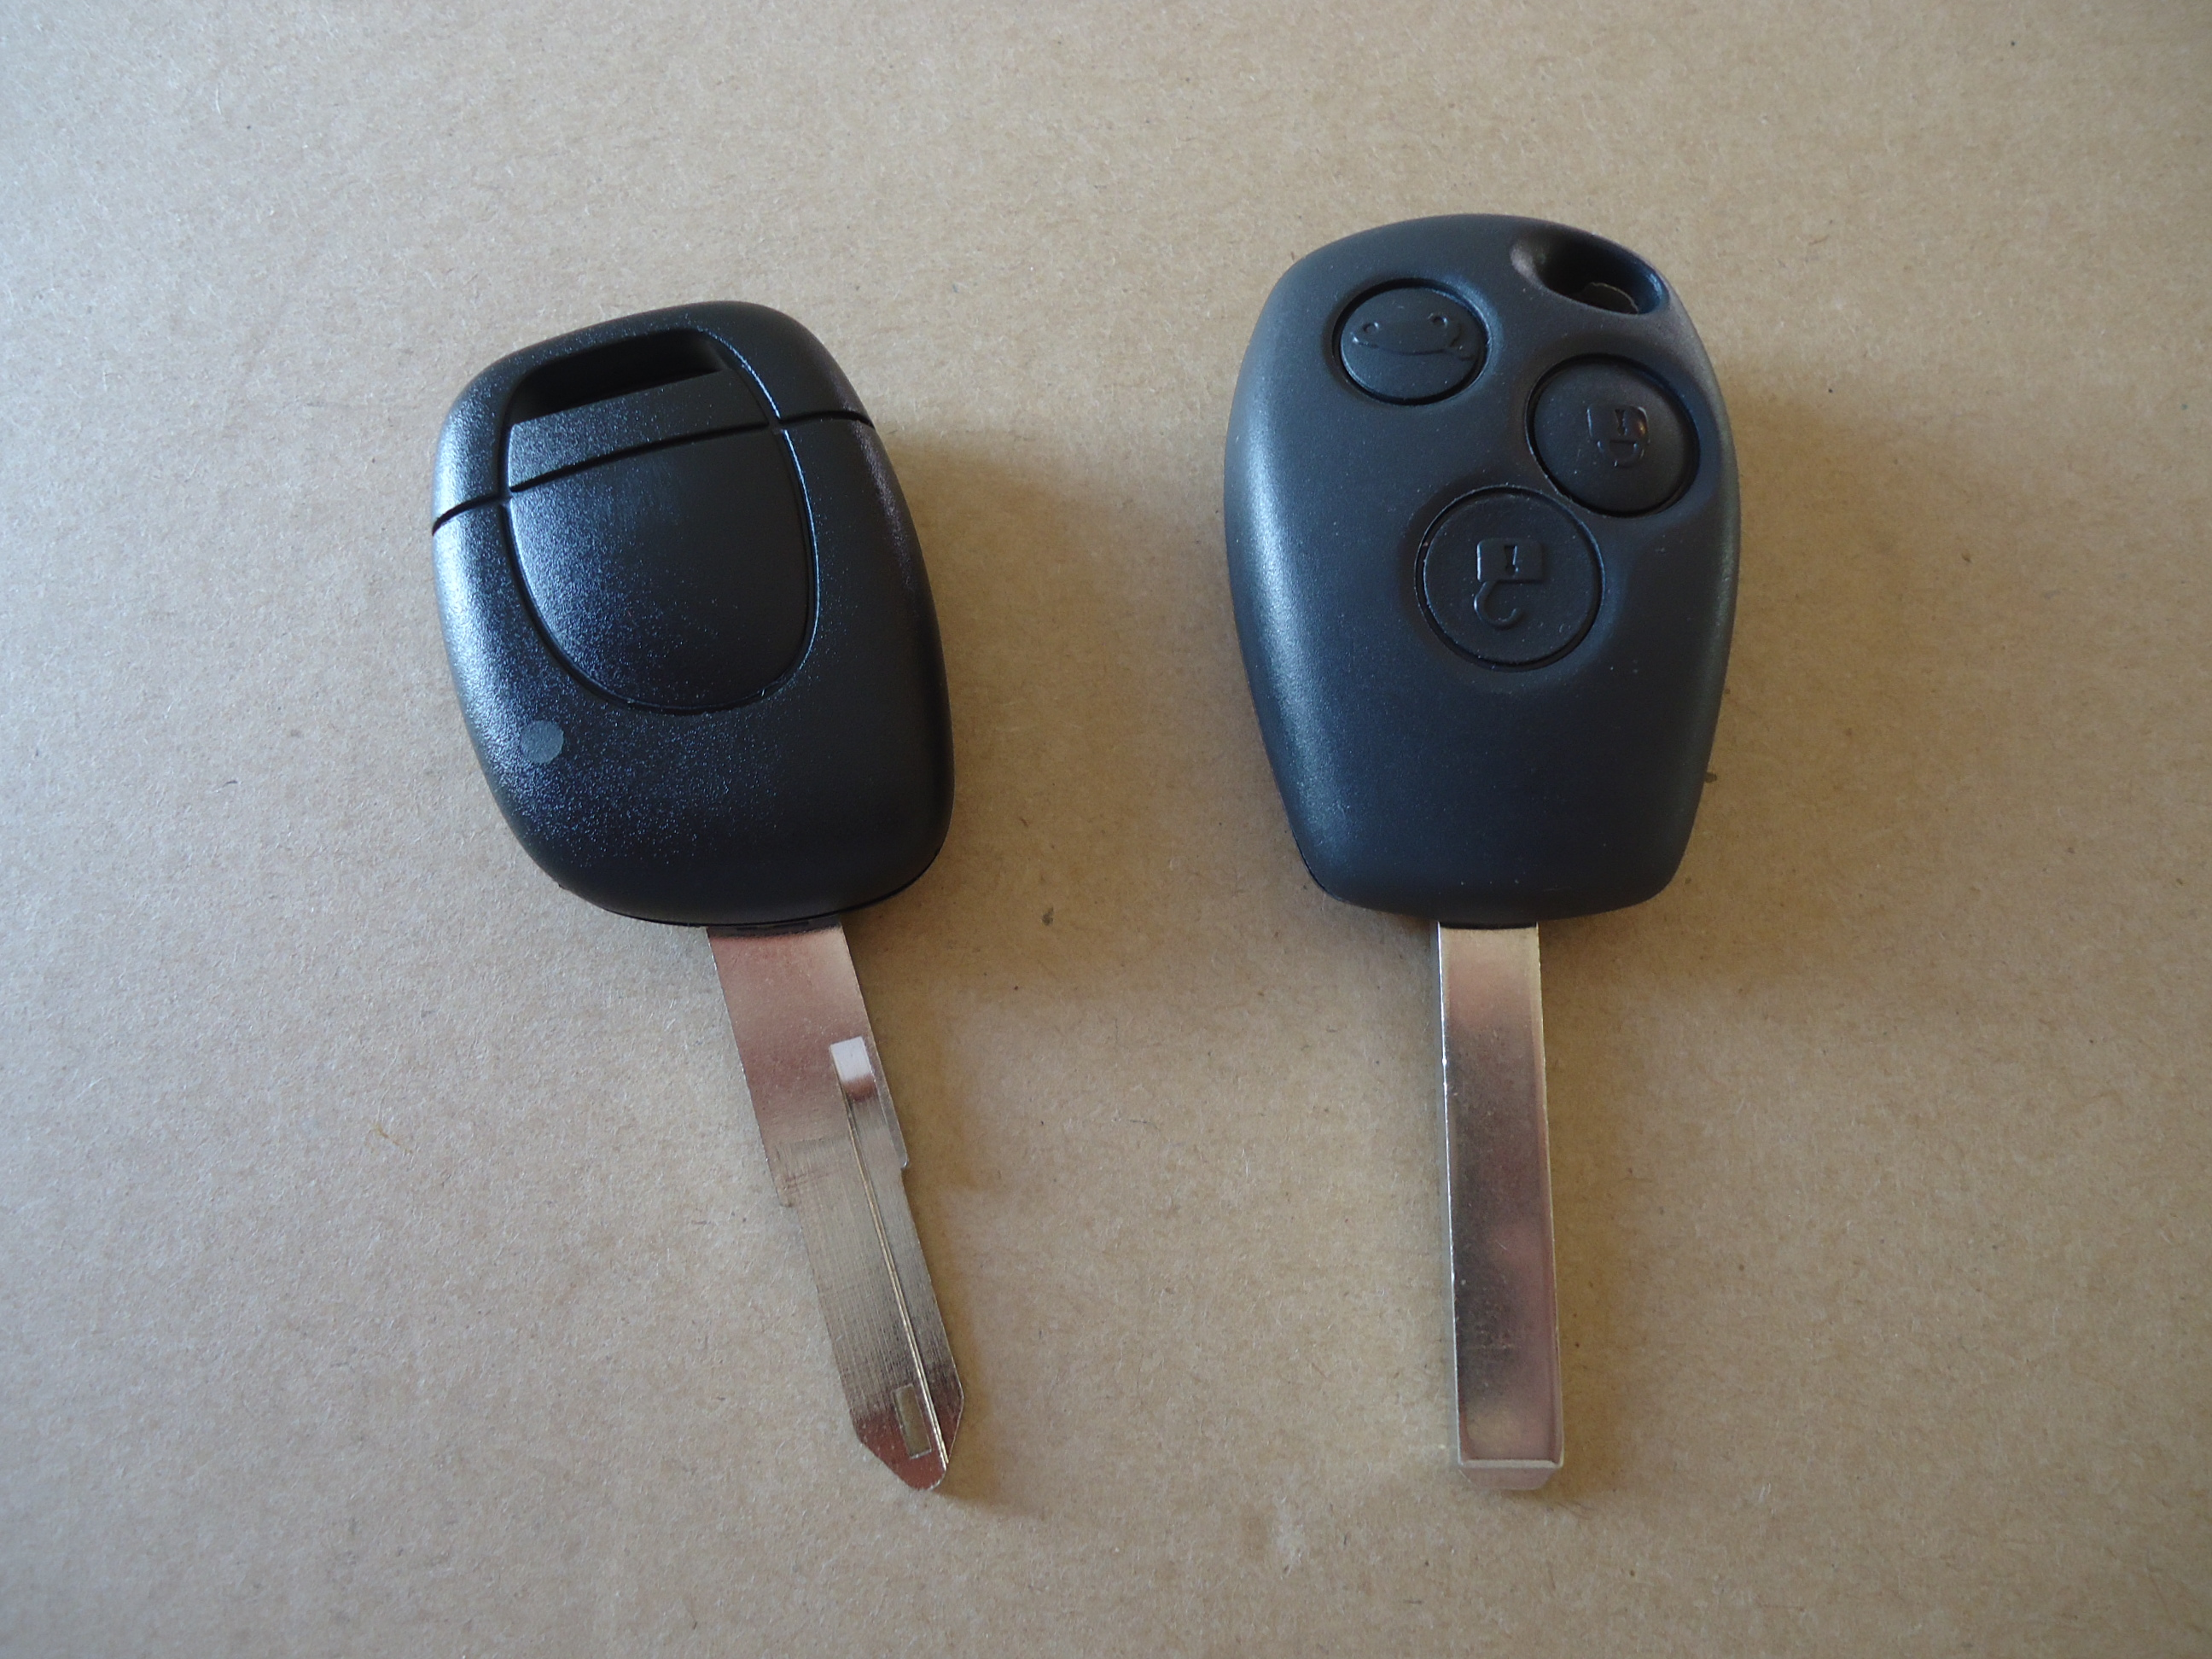 Le Meilleur Lost And Found Renault Key Found At The Harps Gaa – May Ce Mois Ci